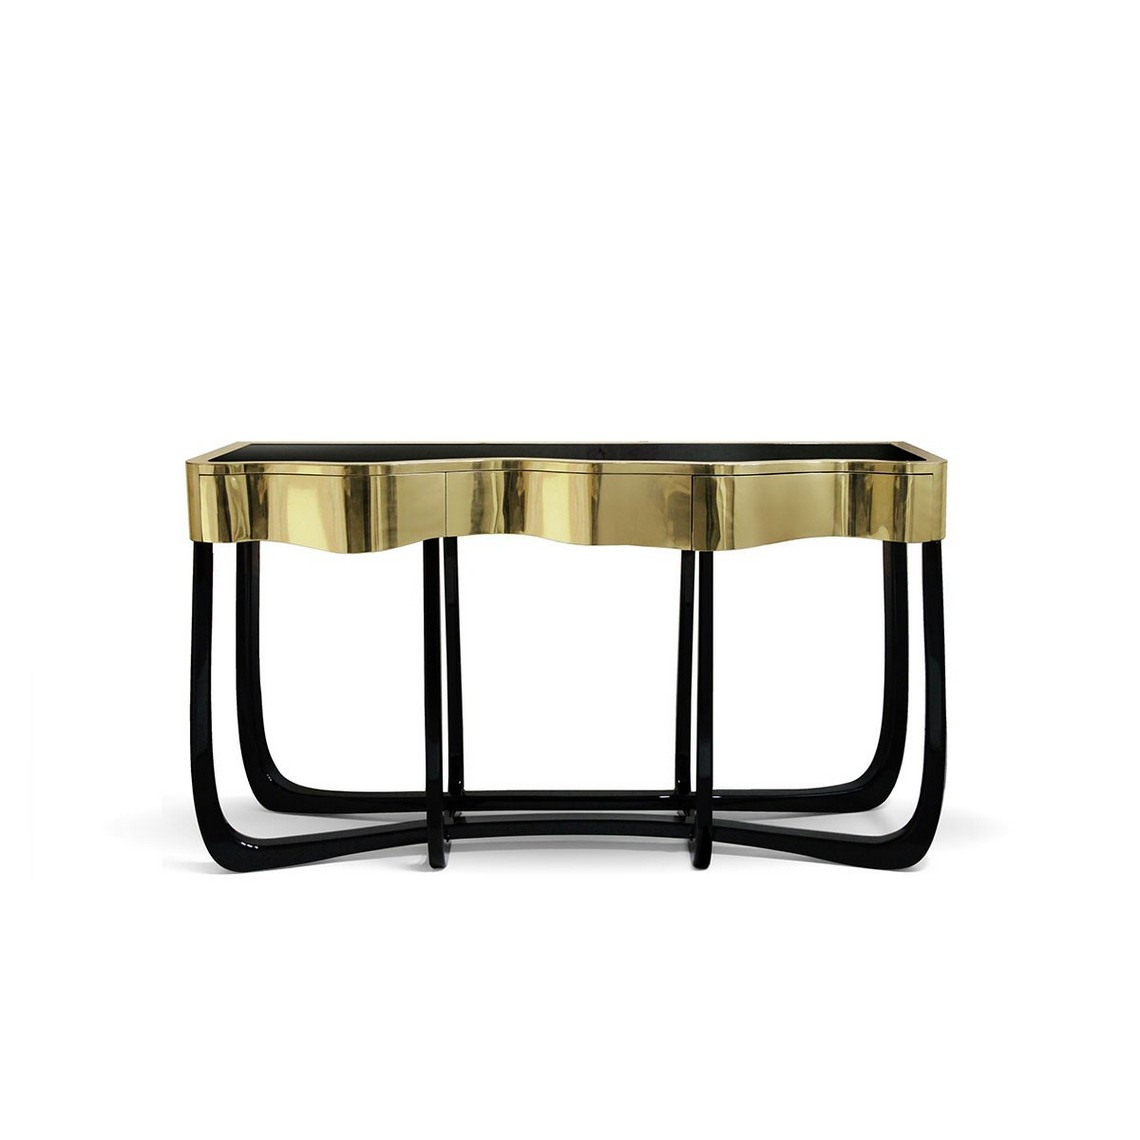 Trendy Console Tables For 2019 trendy console tables Trendy Console Tables sinuous 1